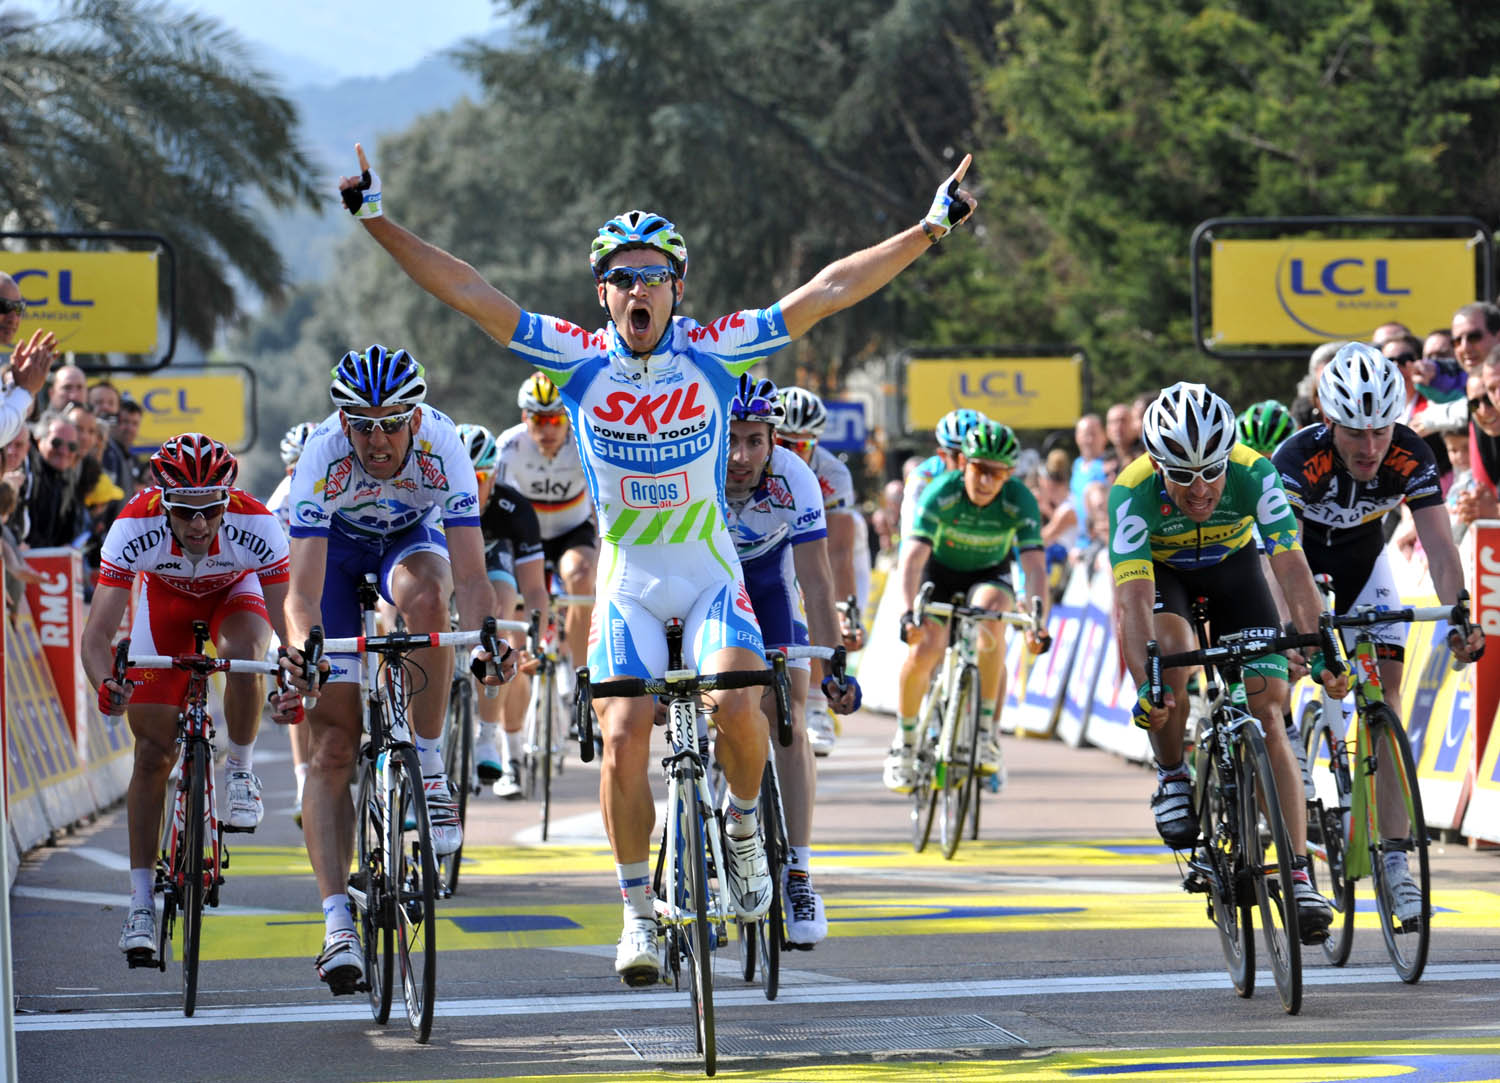 Simon Geschke wins, Criterium International 2011, stage two